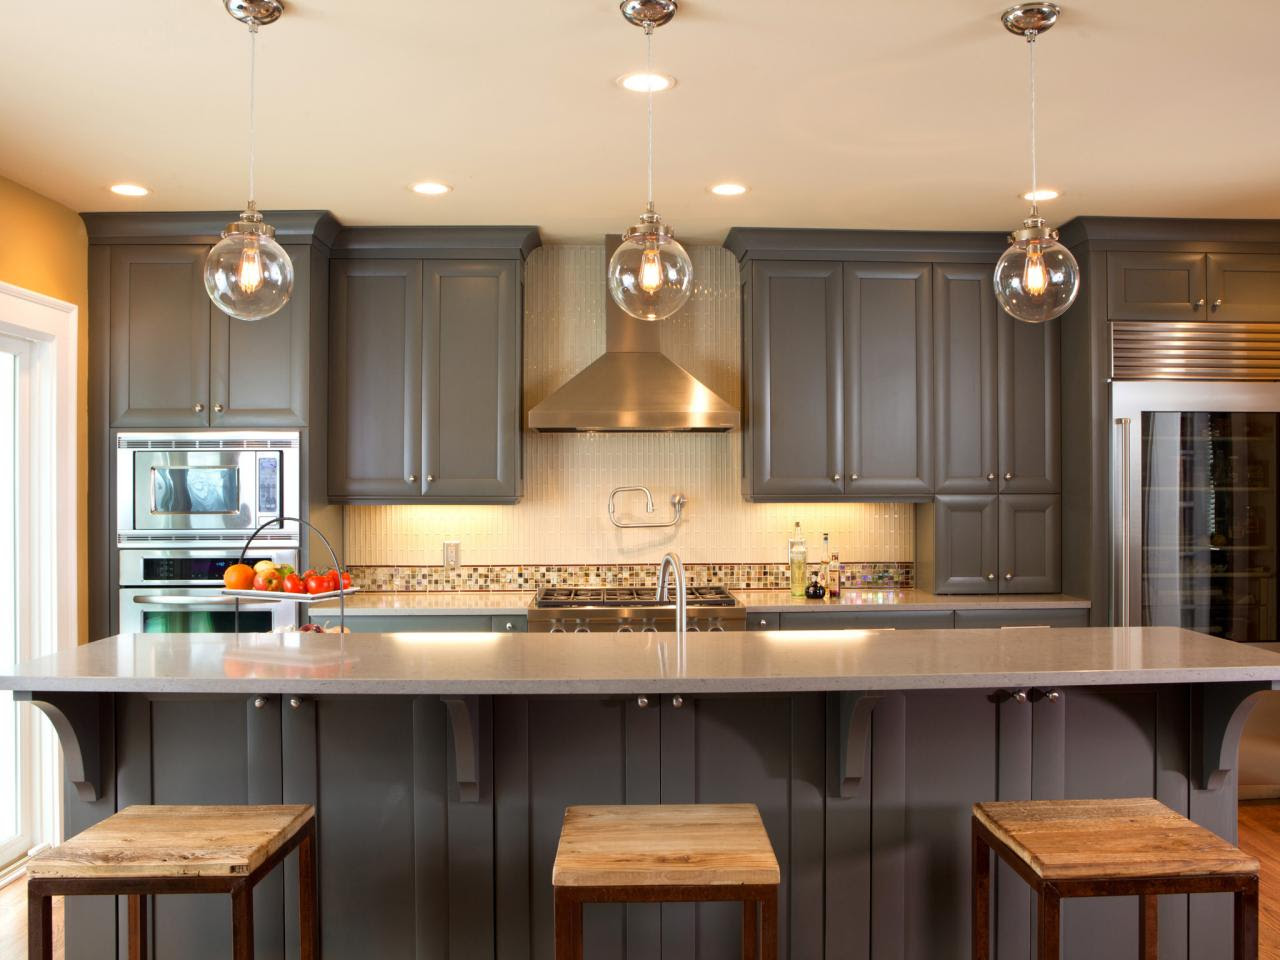 Ideas for Painting Kitchen Cabinets Pictures From HGTV